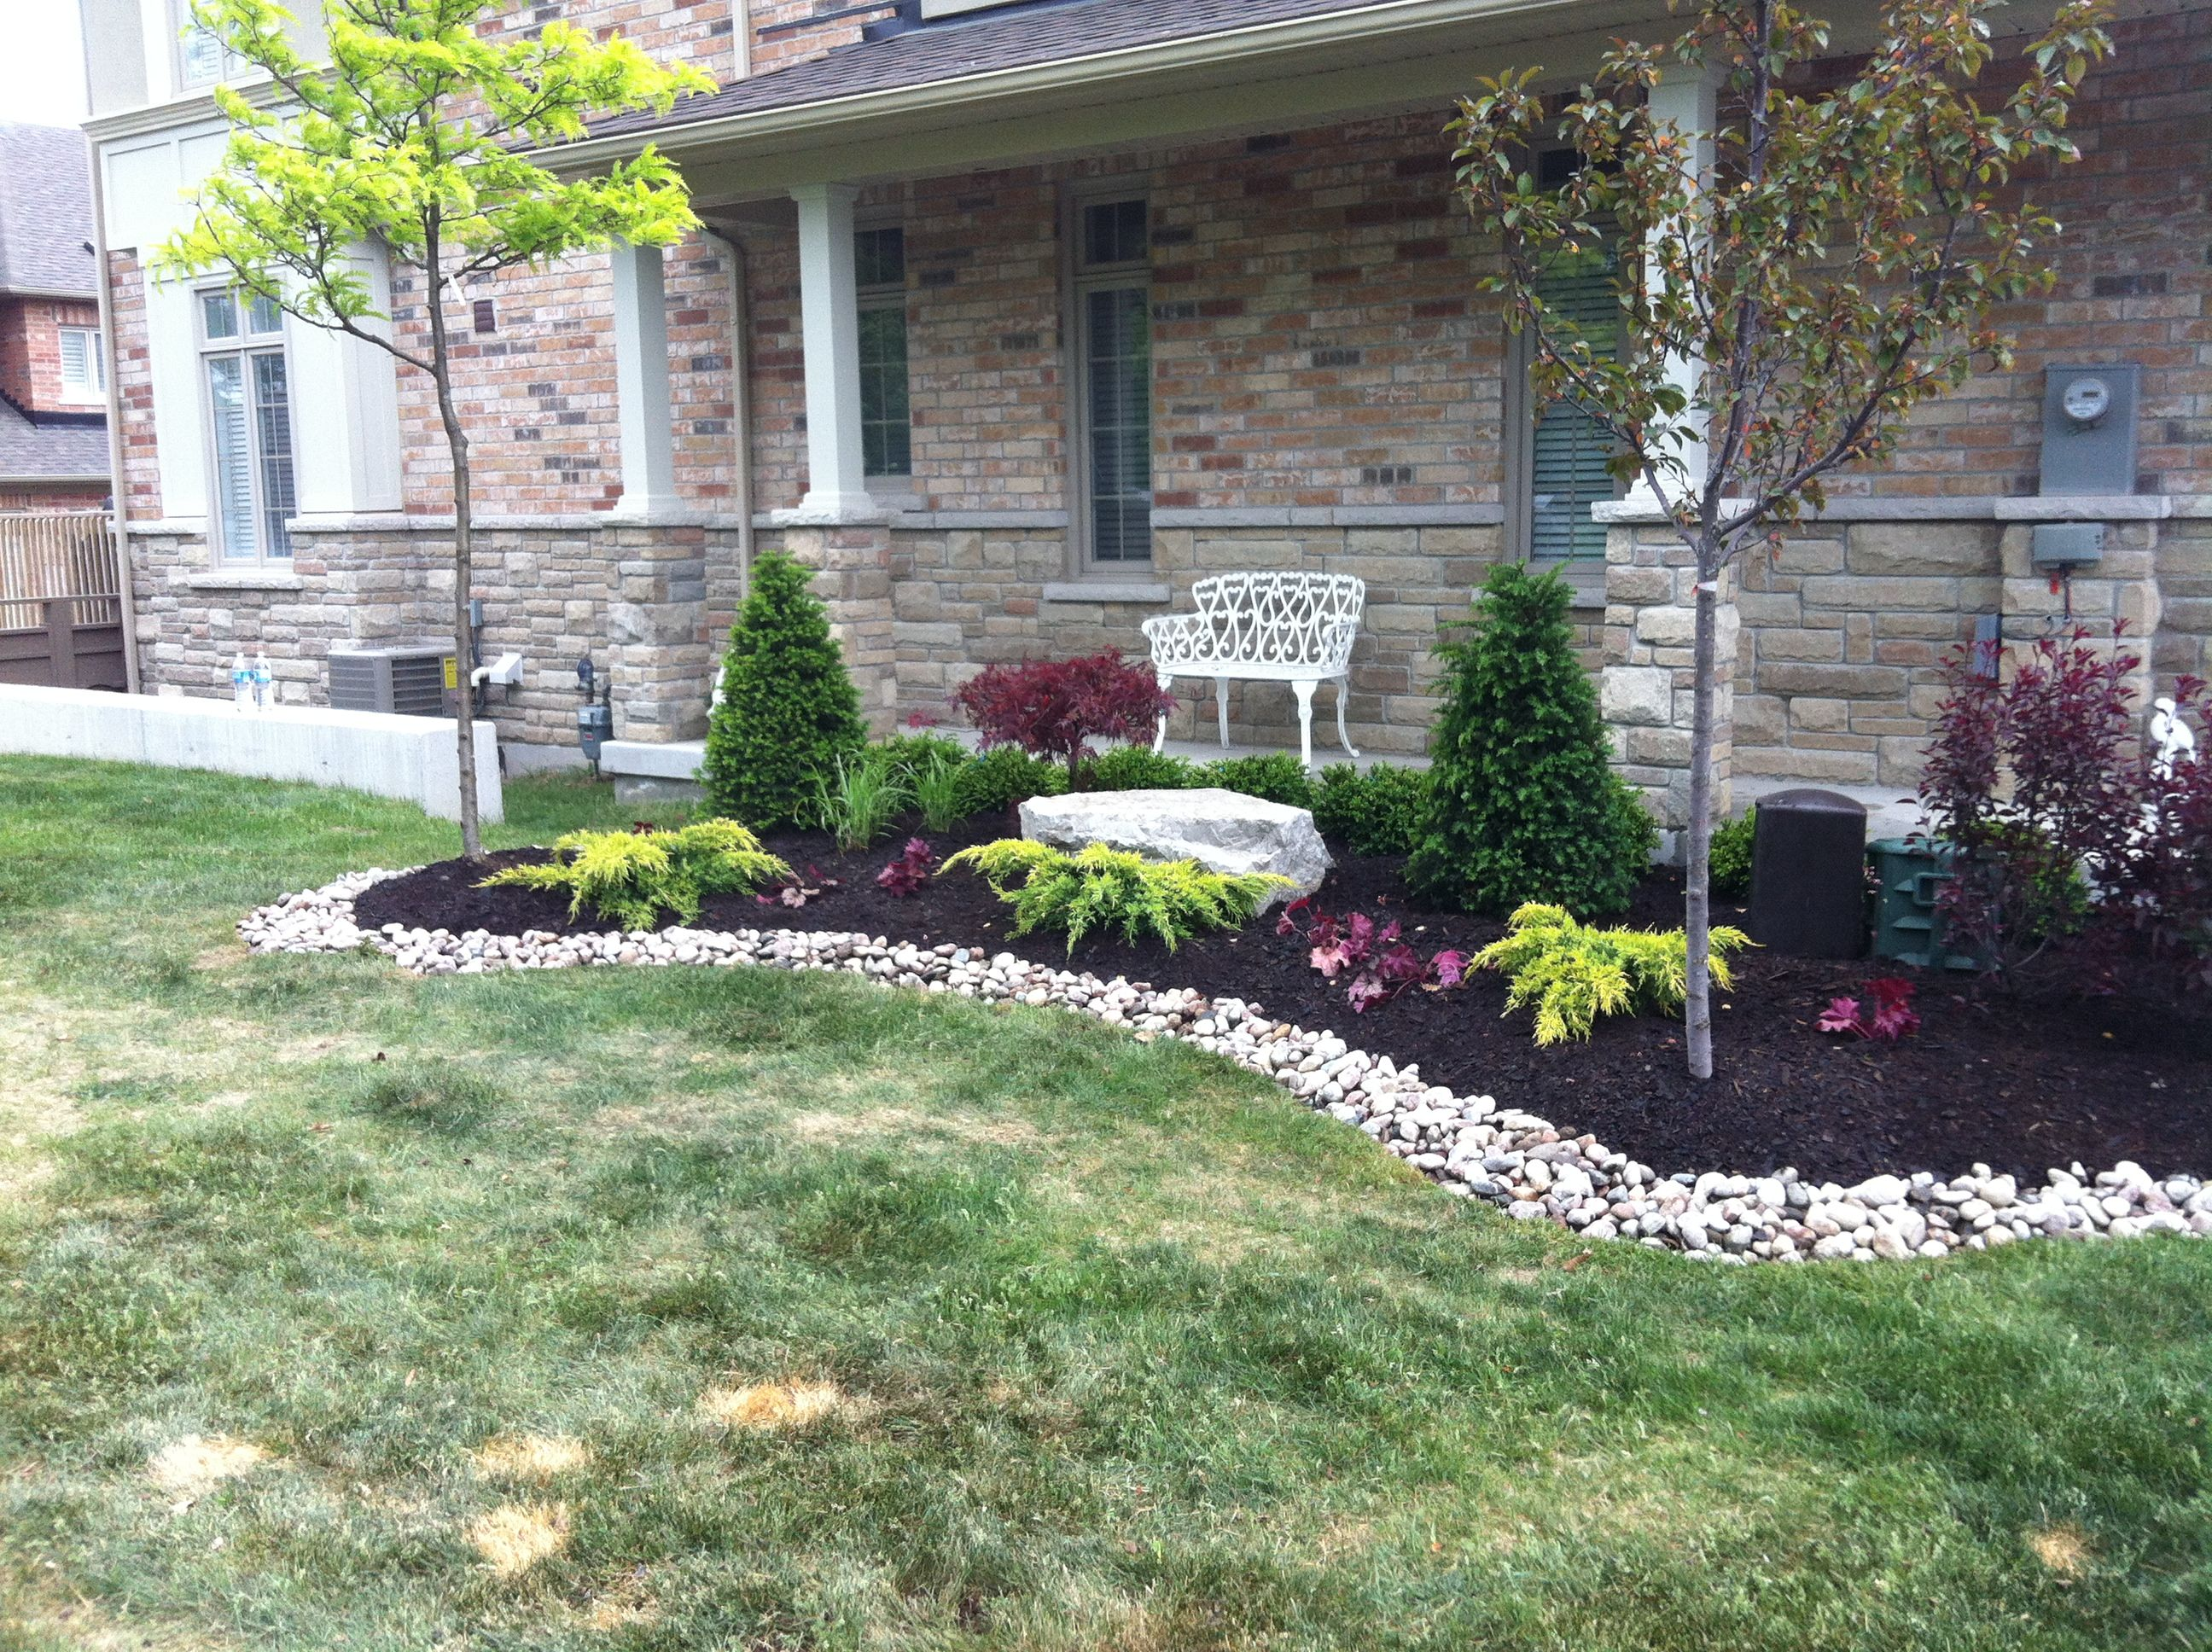 Low maintenance landscape design ideas low maintenance for Backyard low maintenance landscaping ideas